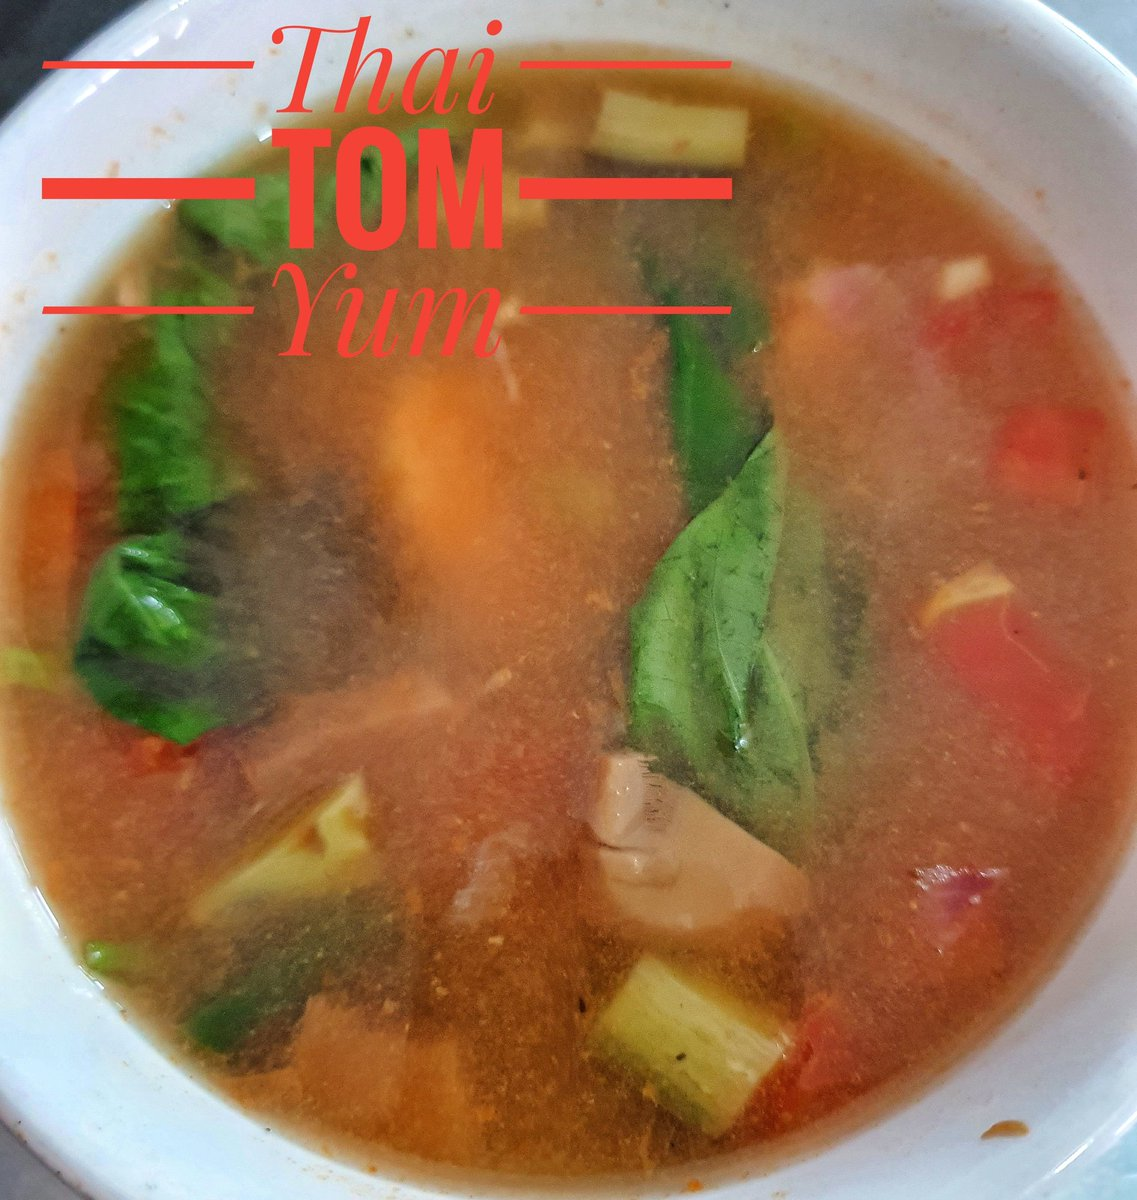 Thai Tom Yum, a spicy soup filled with flavors from thailand.  #TomYum #ThaiSoup #tomyumgoong  #menu #eats #nomnom #happyTummy #myfav  #lunchdate #eatclean #Restaurant  #Artcafe https://t.co/A3a0ceCDO7